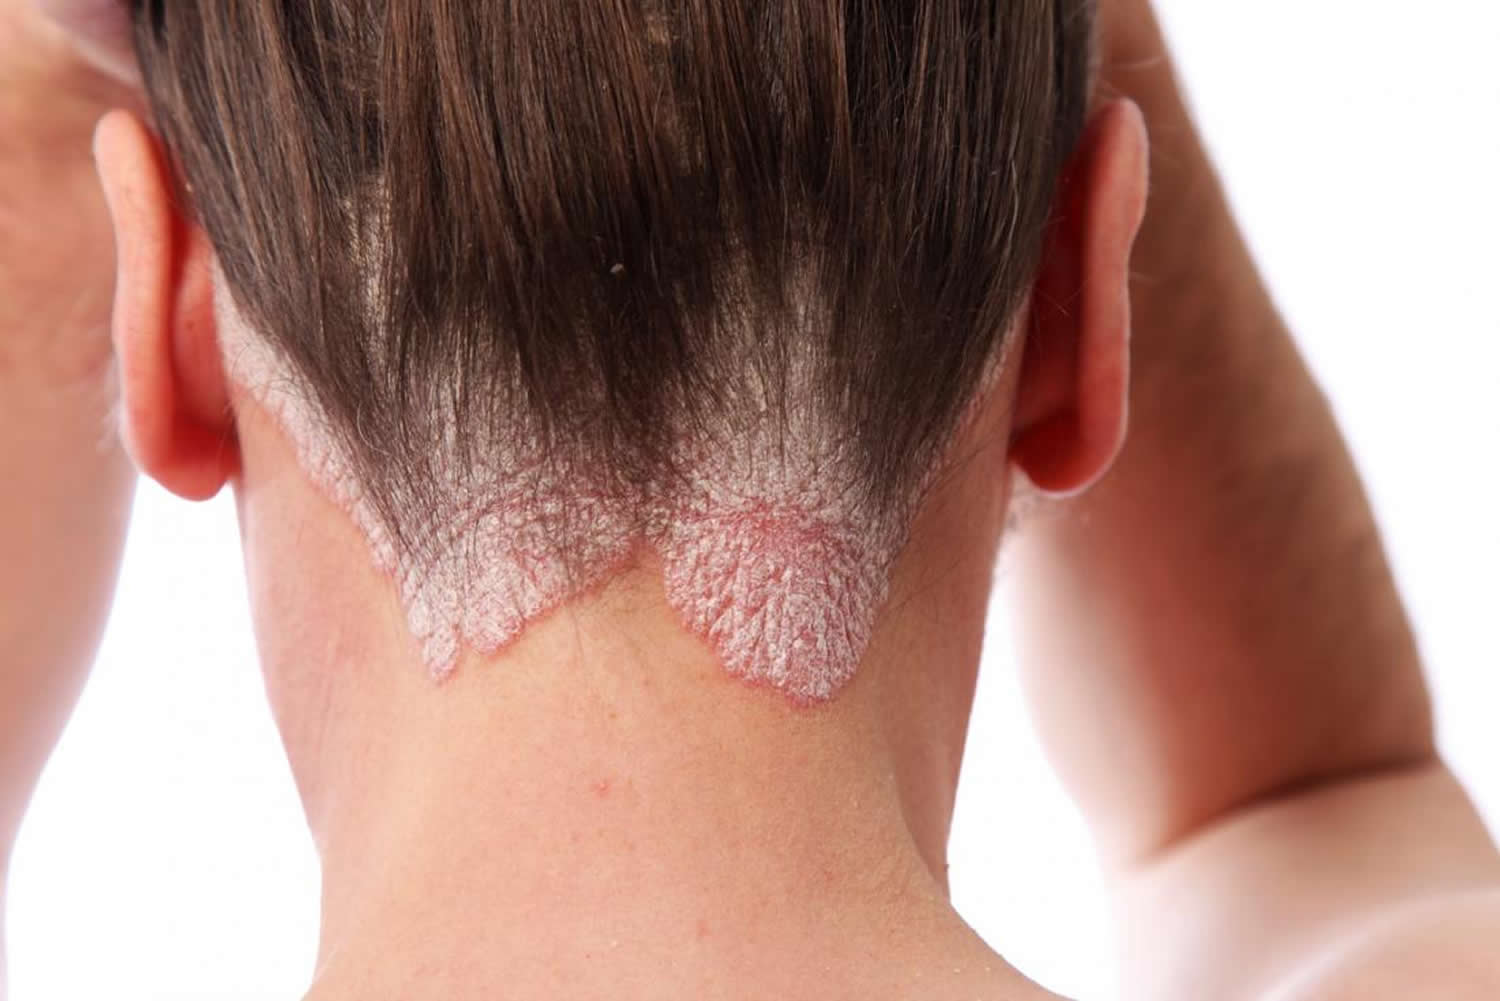 Red spots on the head: psoriasis and not only